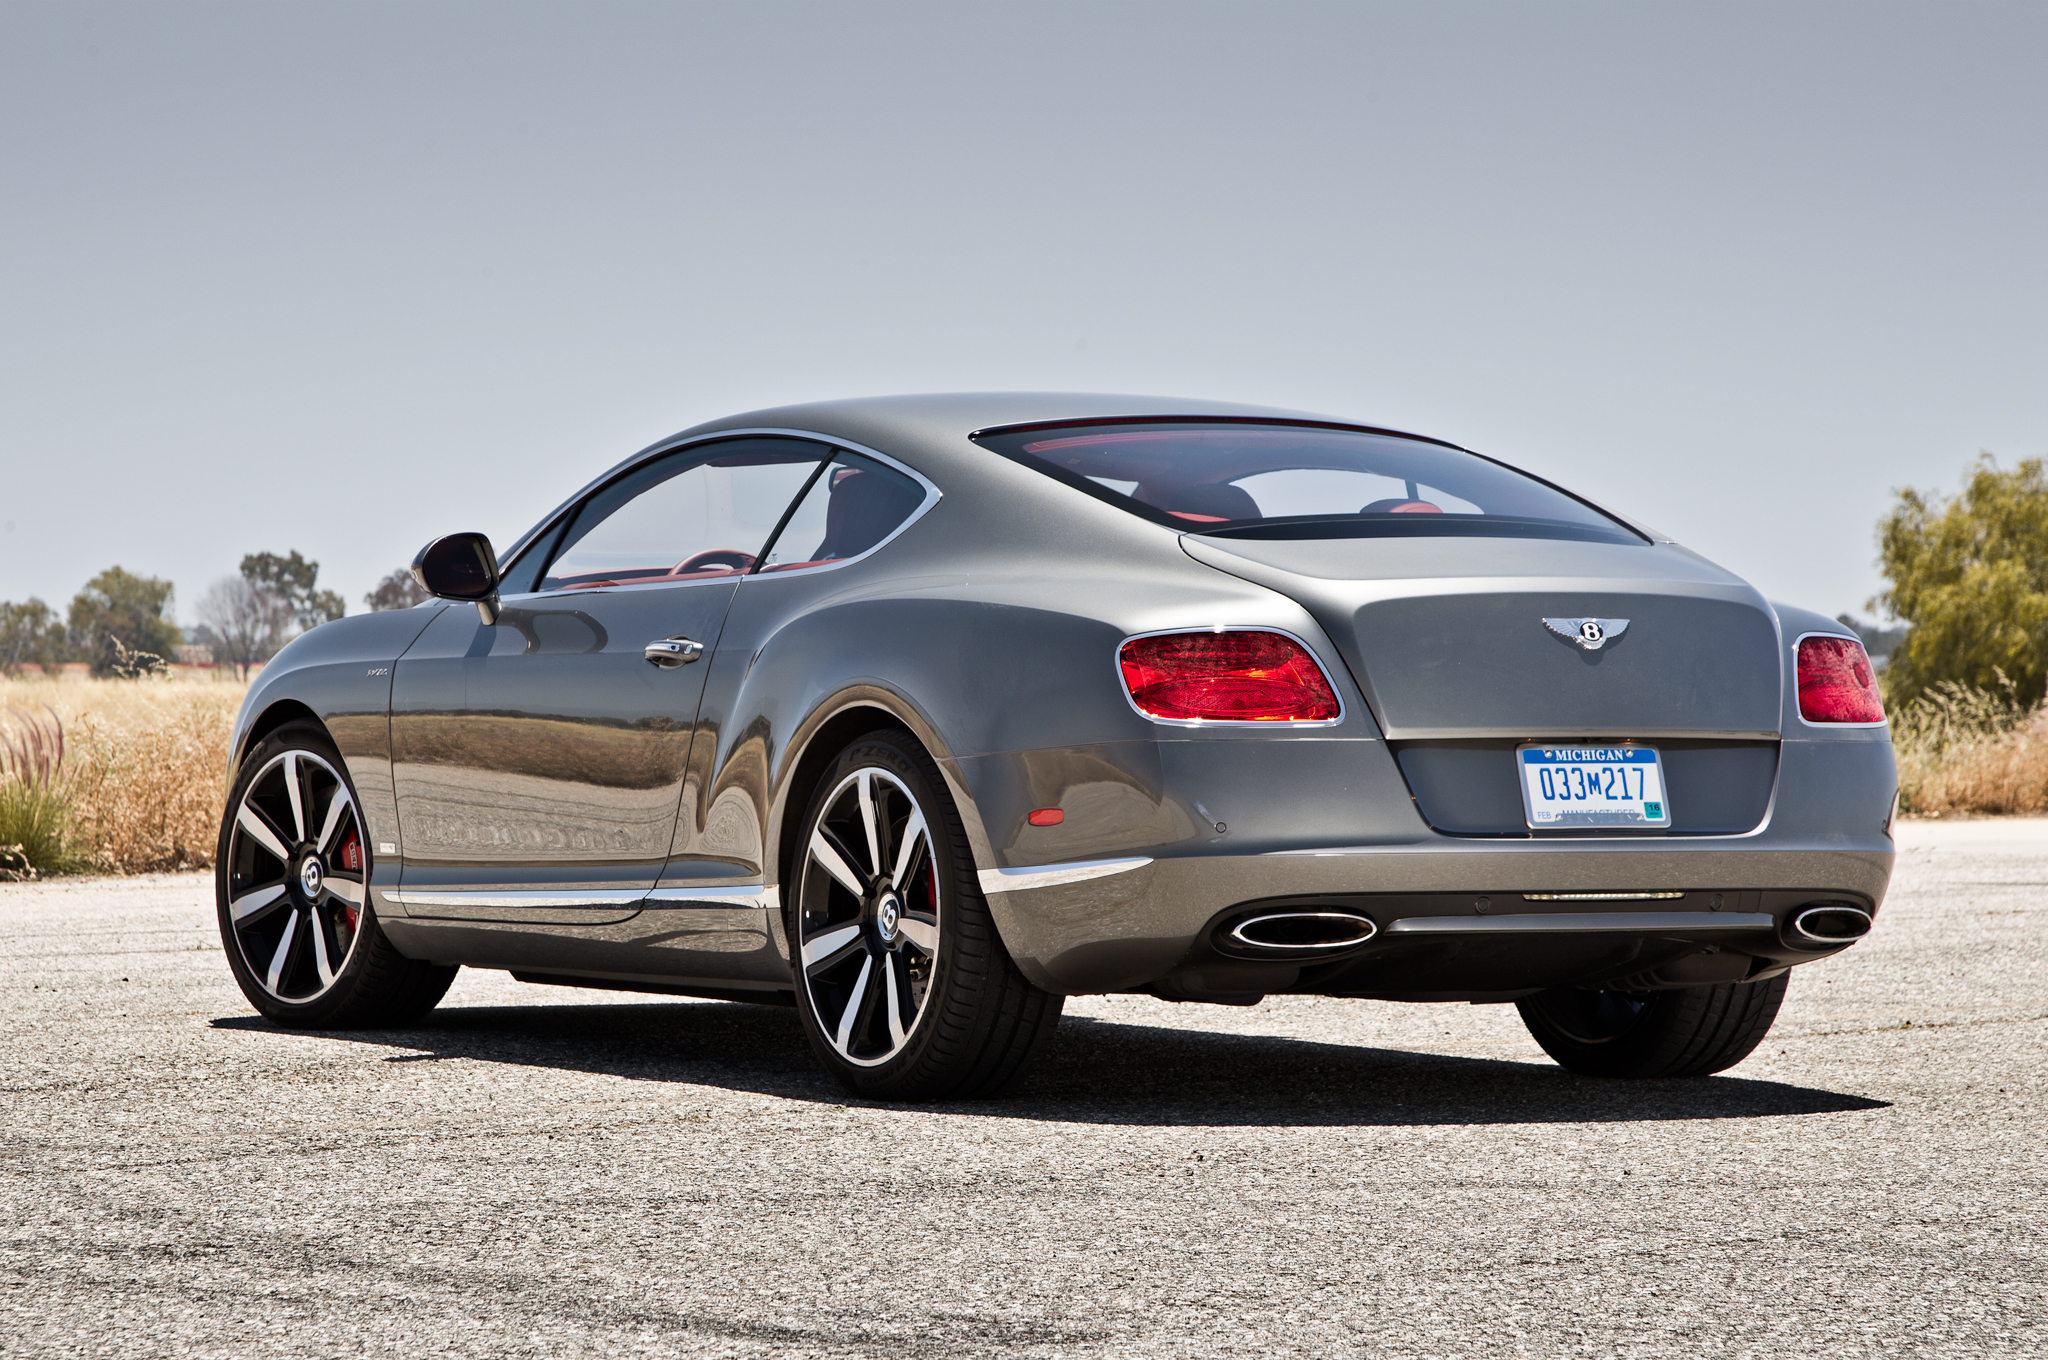 2013 Bentley Continental Gtc #2